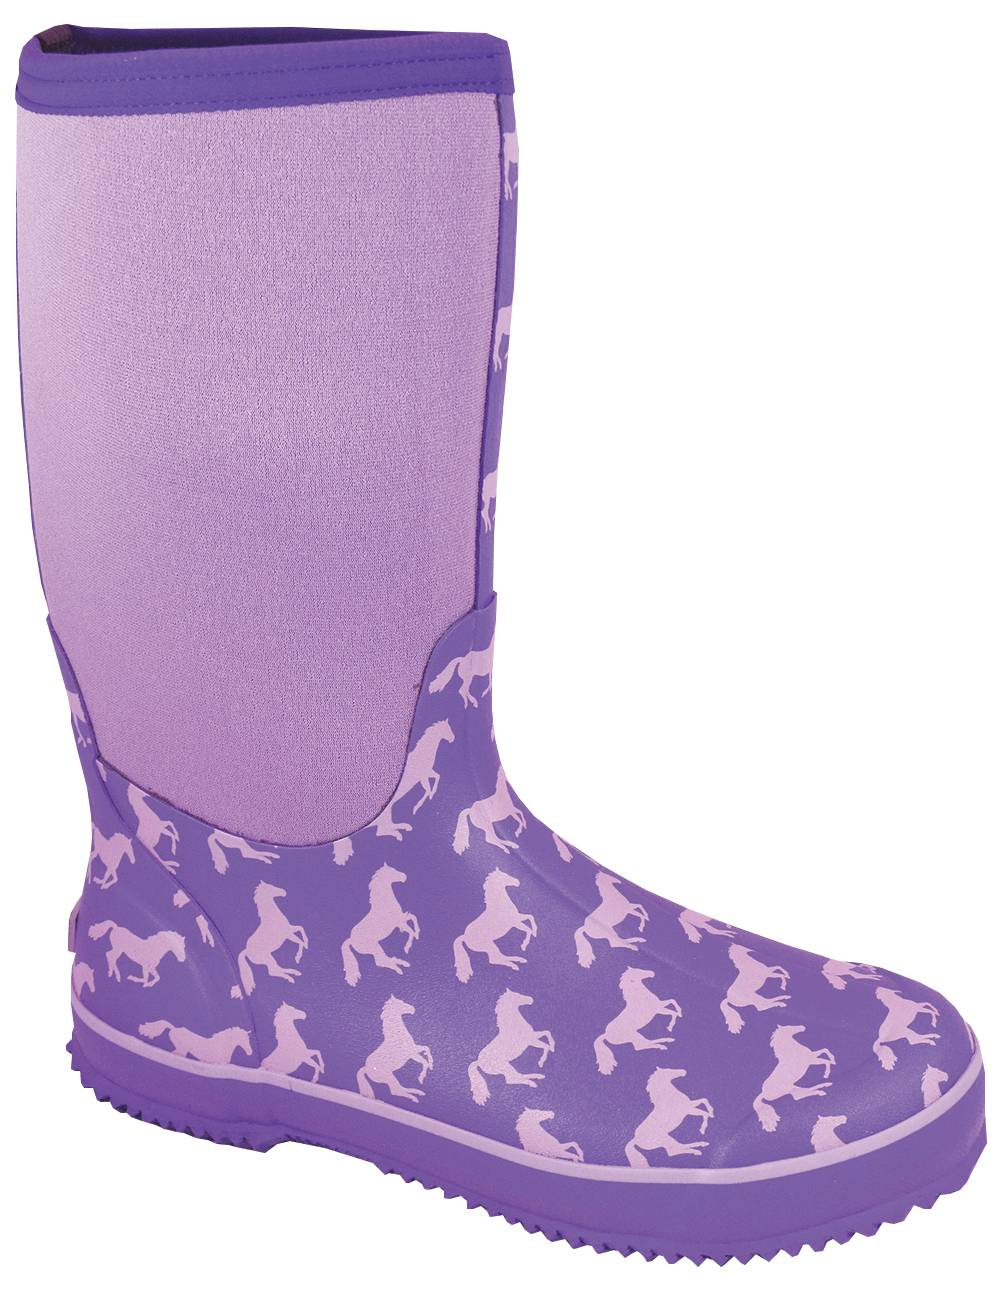 Smoky Mountain Ladies Horses Amphibian Boots - Purple